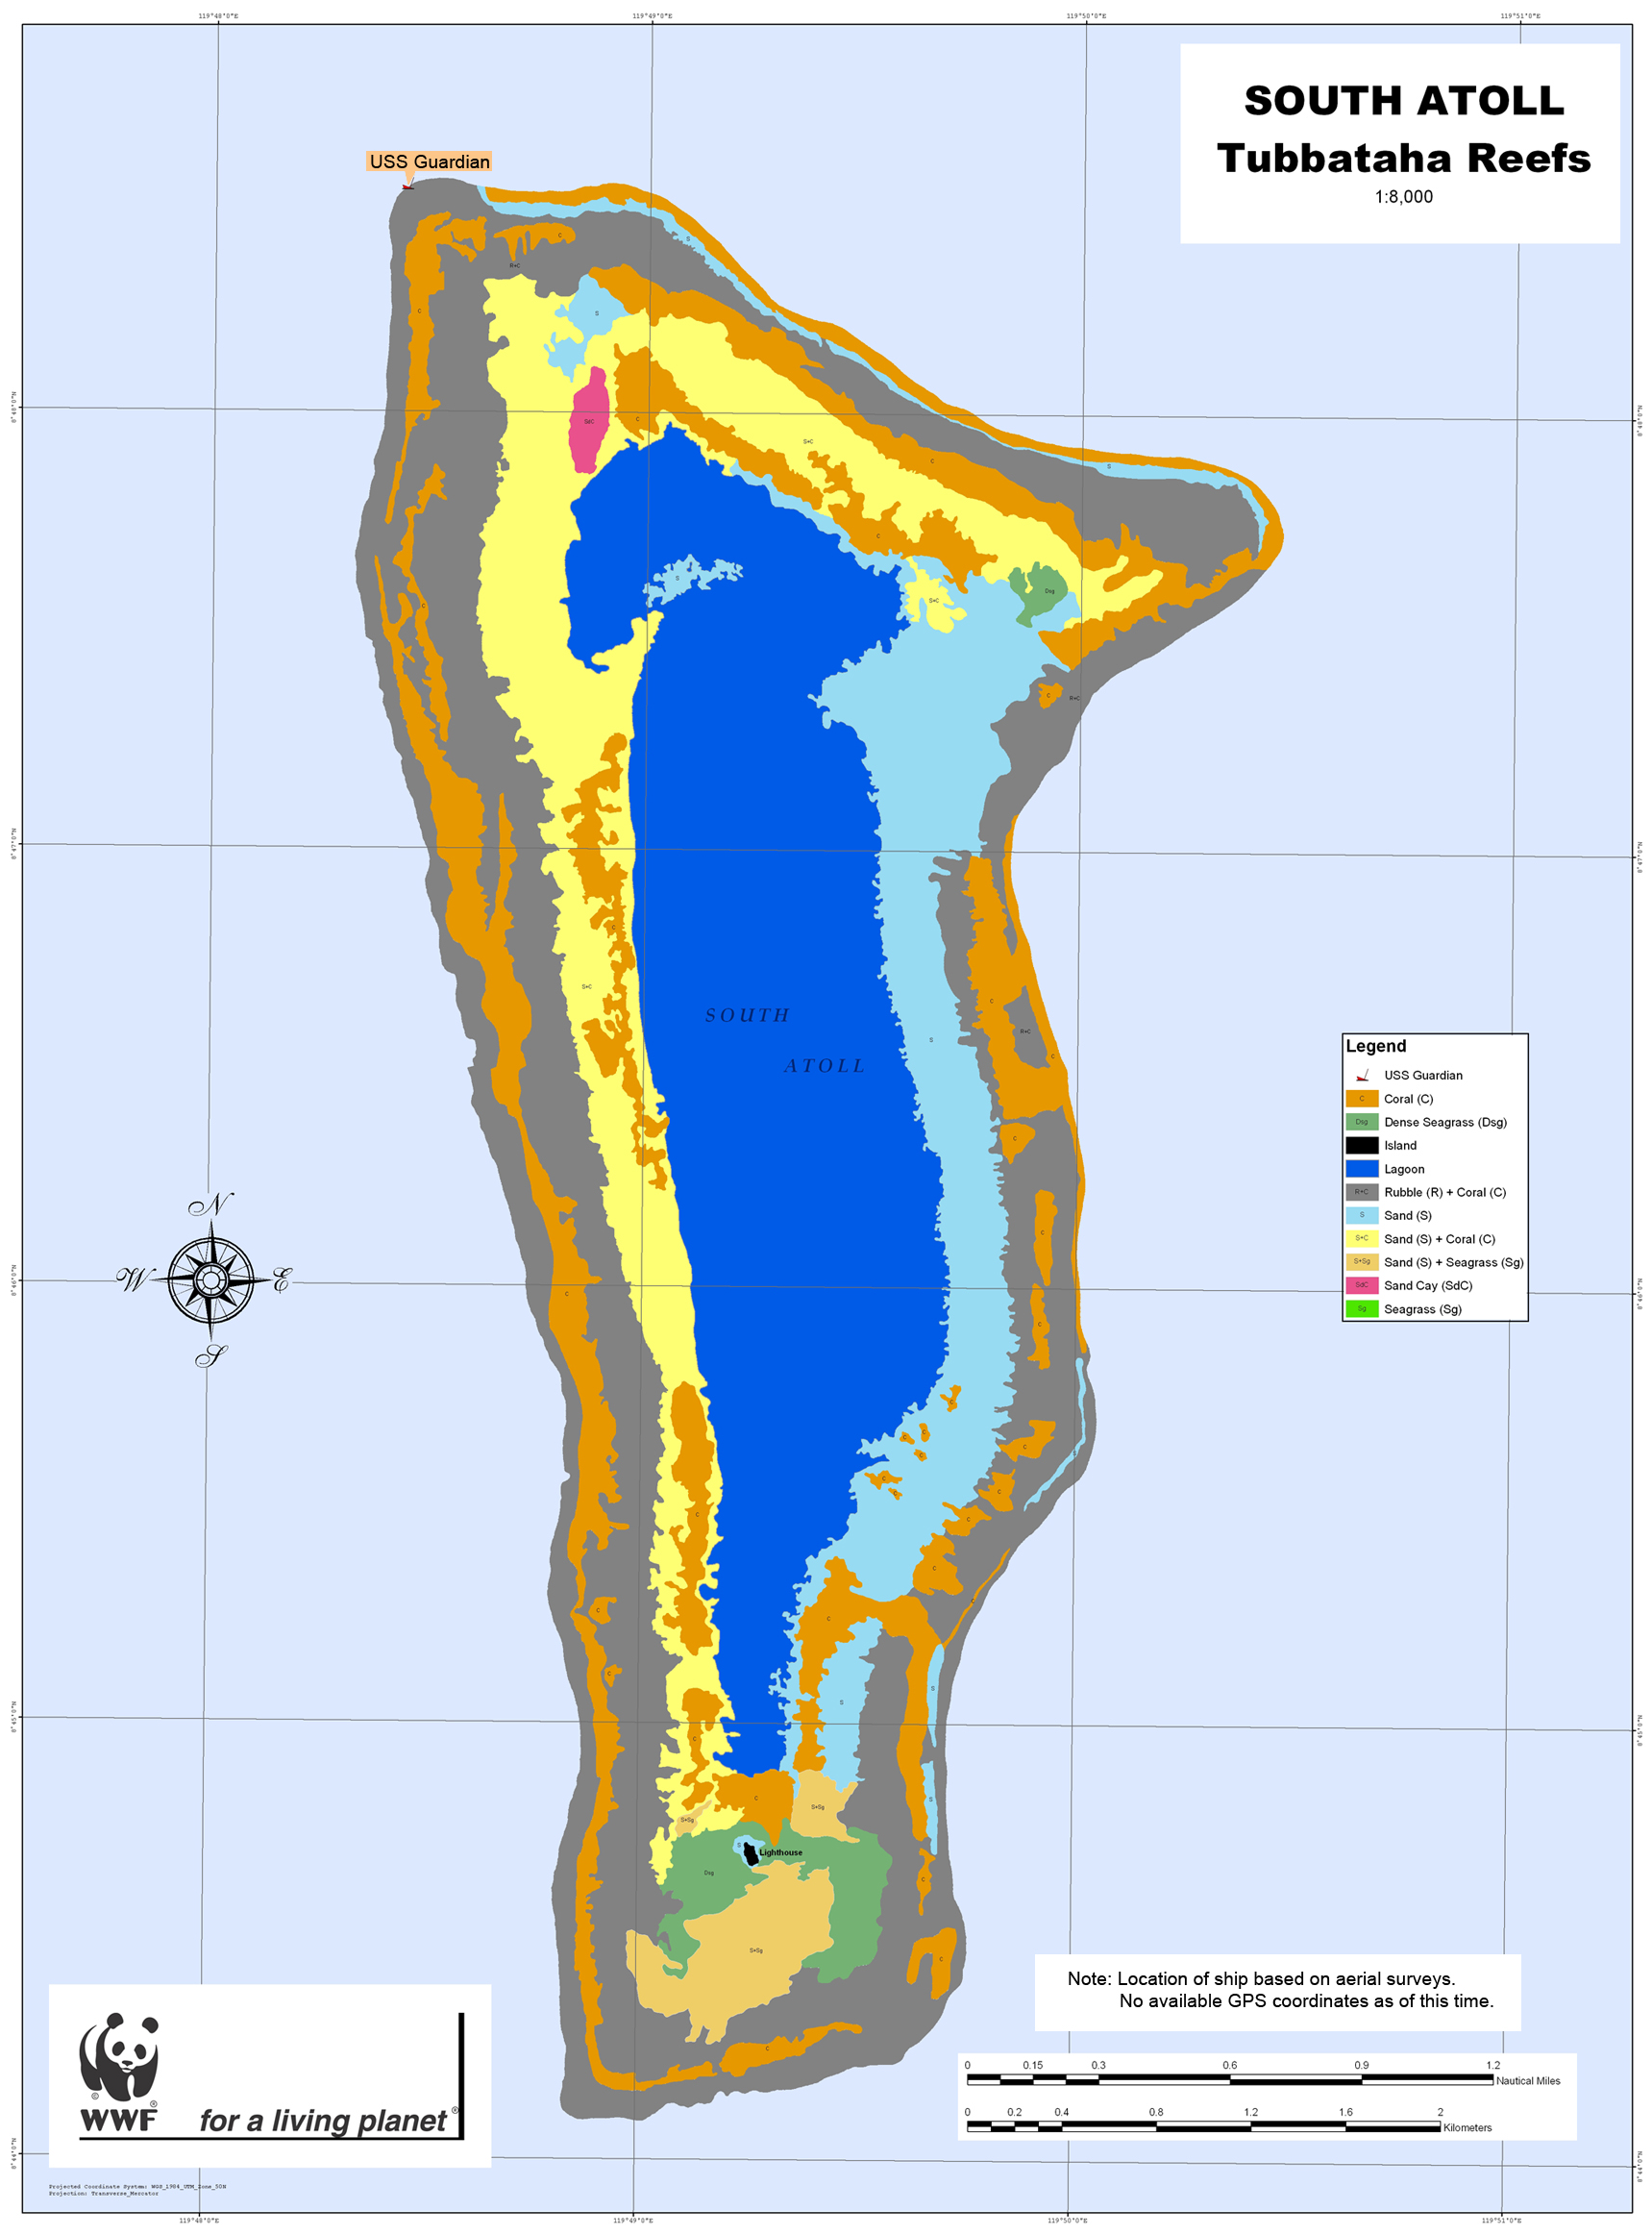 Map of actual grounding site of USS Guardian at Tubbataha Reef (Photo courtesy of WWF-Philippines)